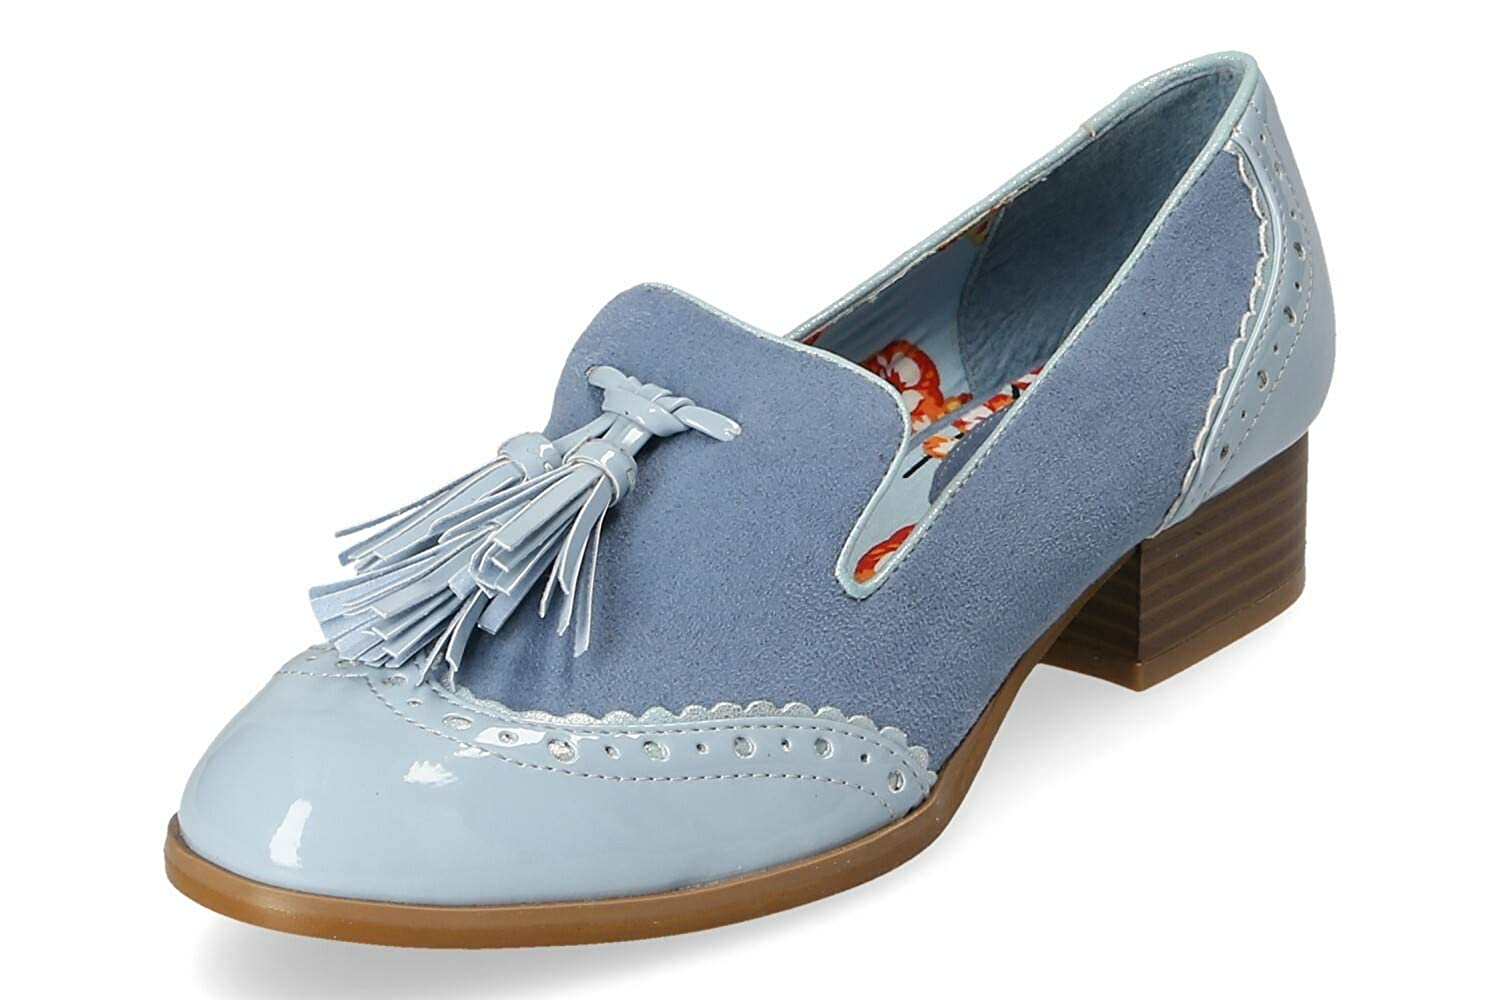 Ruby Shoo Damen Tara Pumps Blau Hell Gr. 37